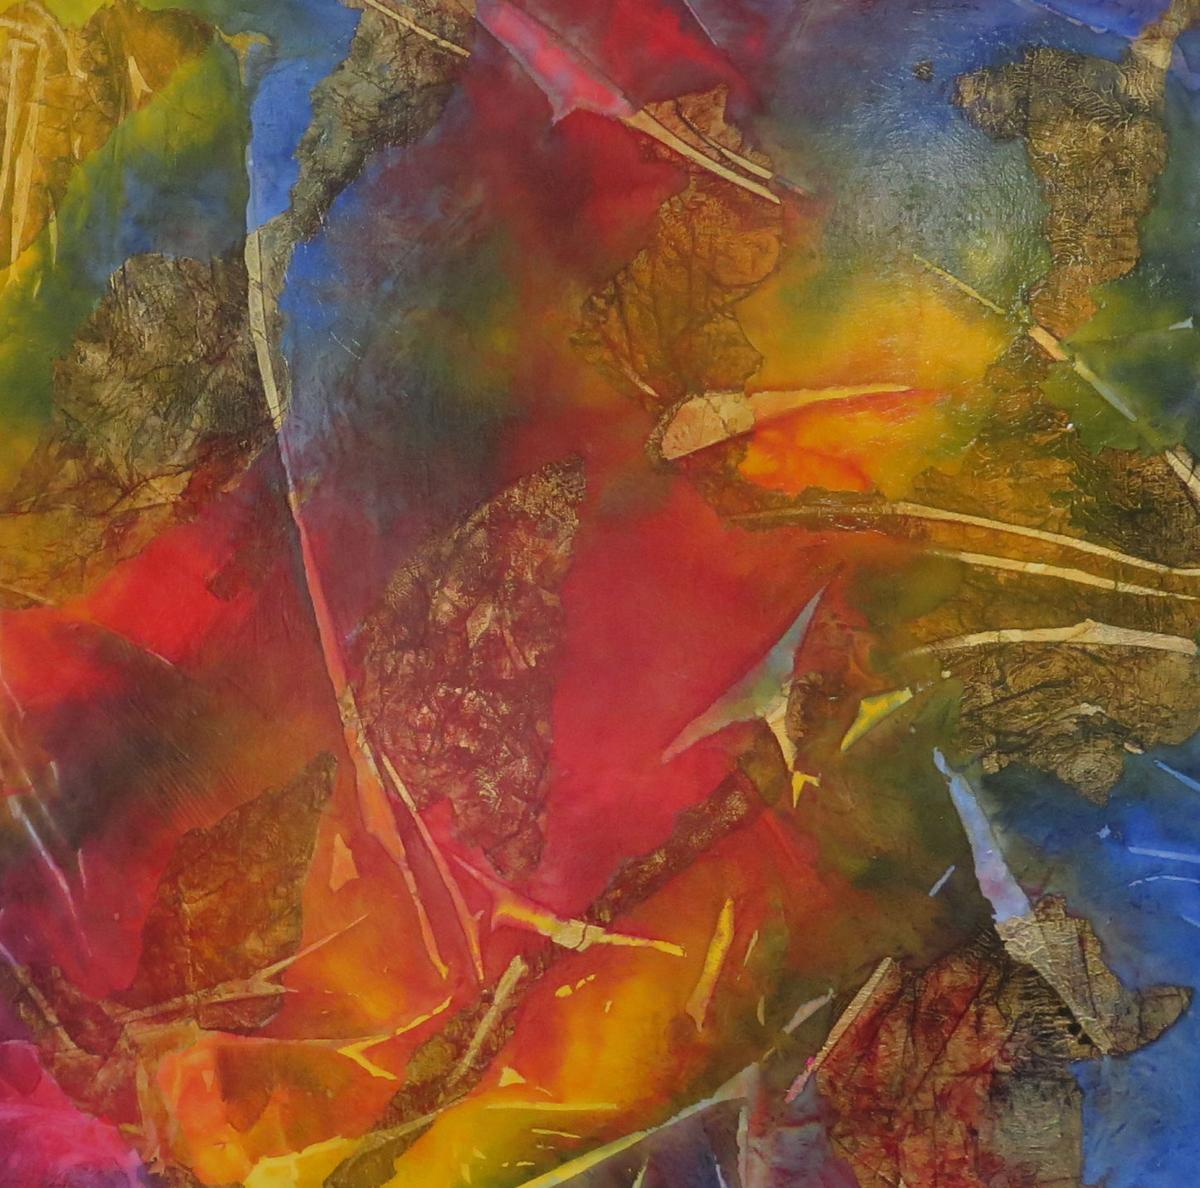 ART BEGETS HAPPINESS: Lifelong passion still going strong